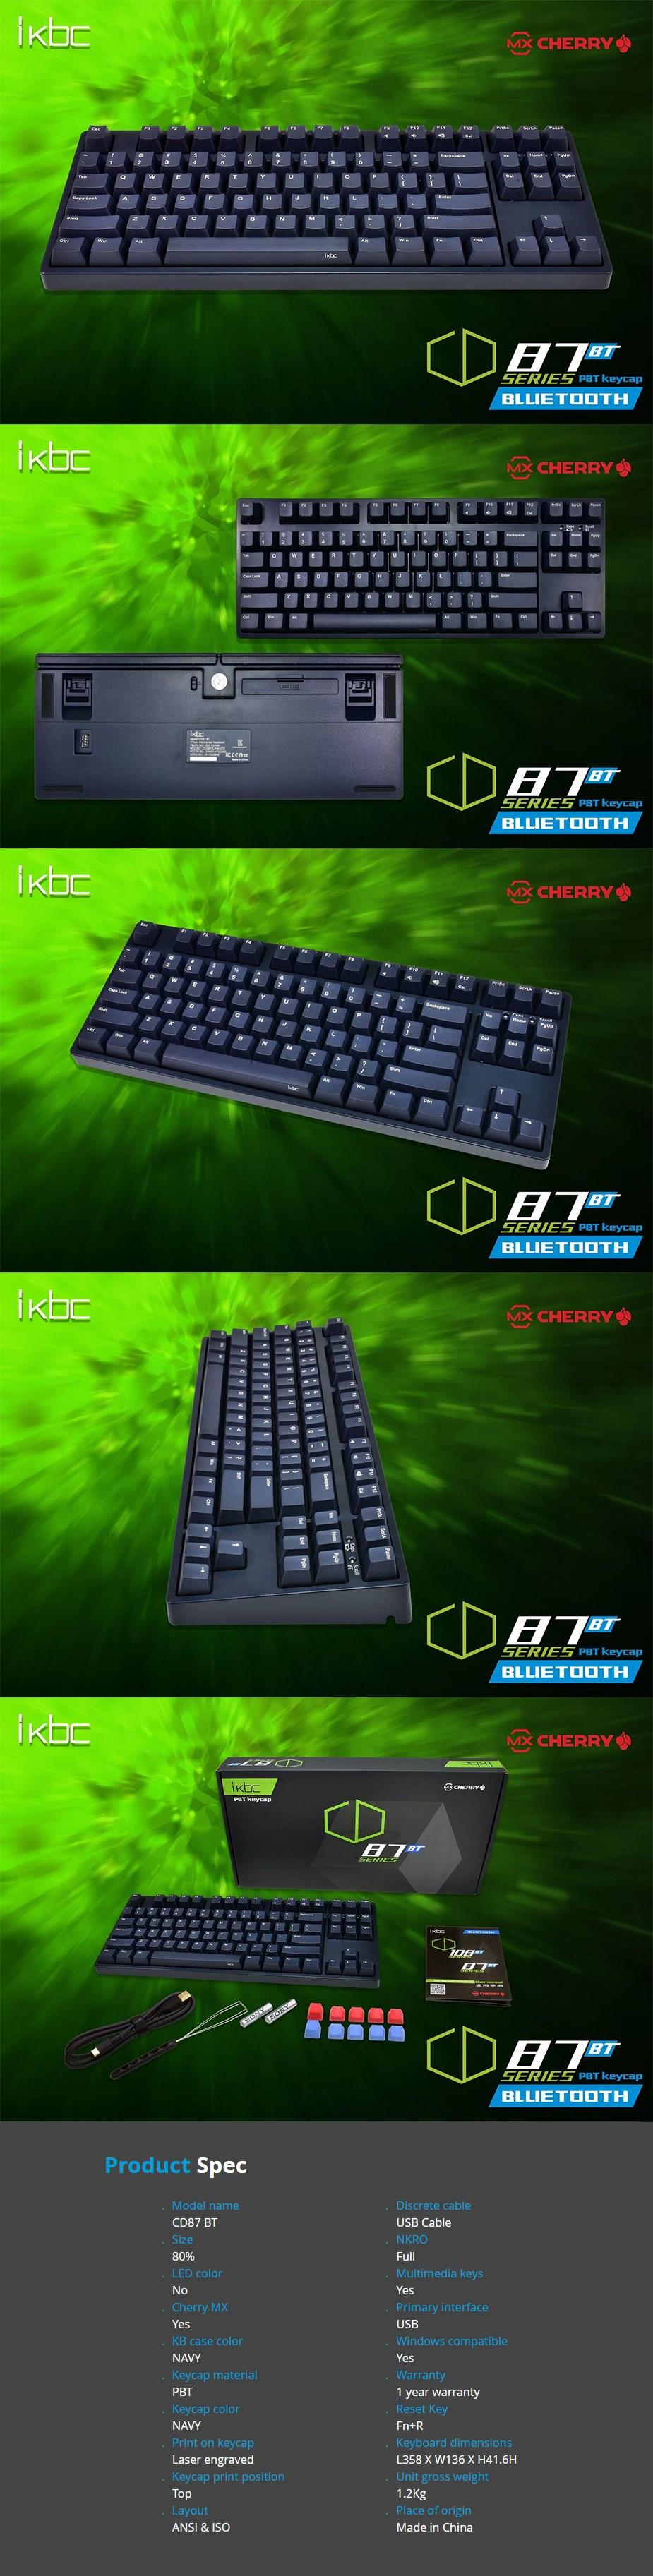 iKBC CD87 BT TKL Navy Mechanical Gaming Keyboard - Cherry MX Blue - Desktop Overview 1